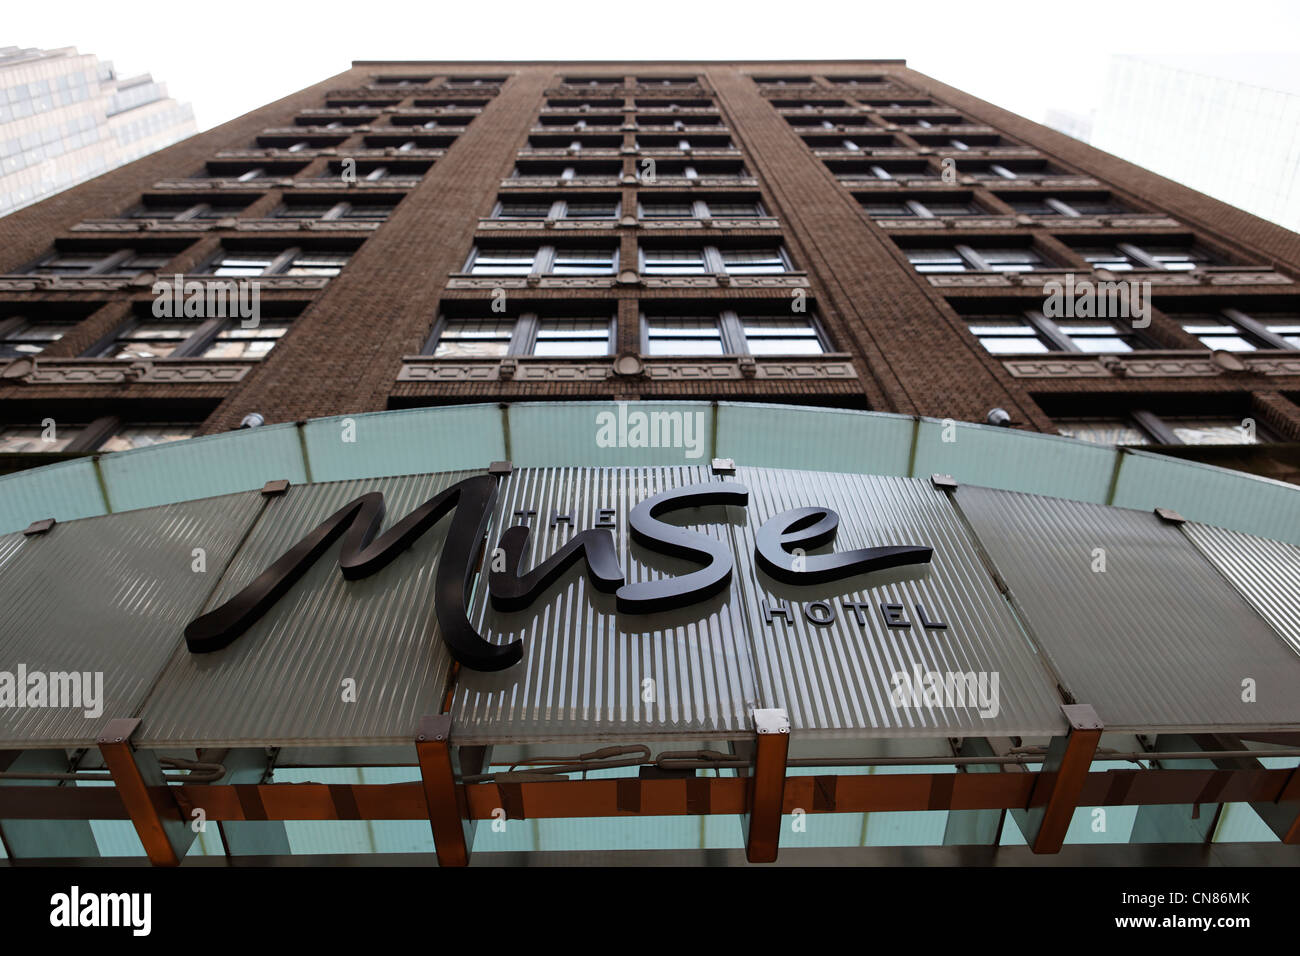 United States, New York City, Manhattan, Midtown, The Muse hotel, facade, 130 W, 46th Street - Stock Image